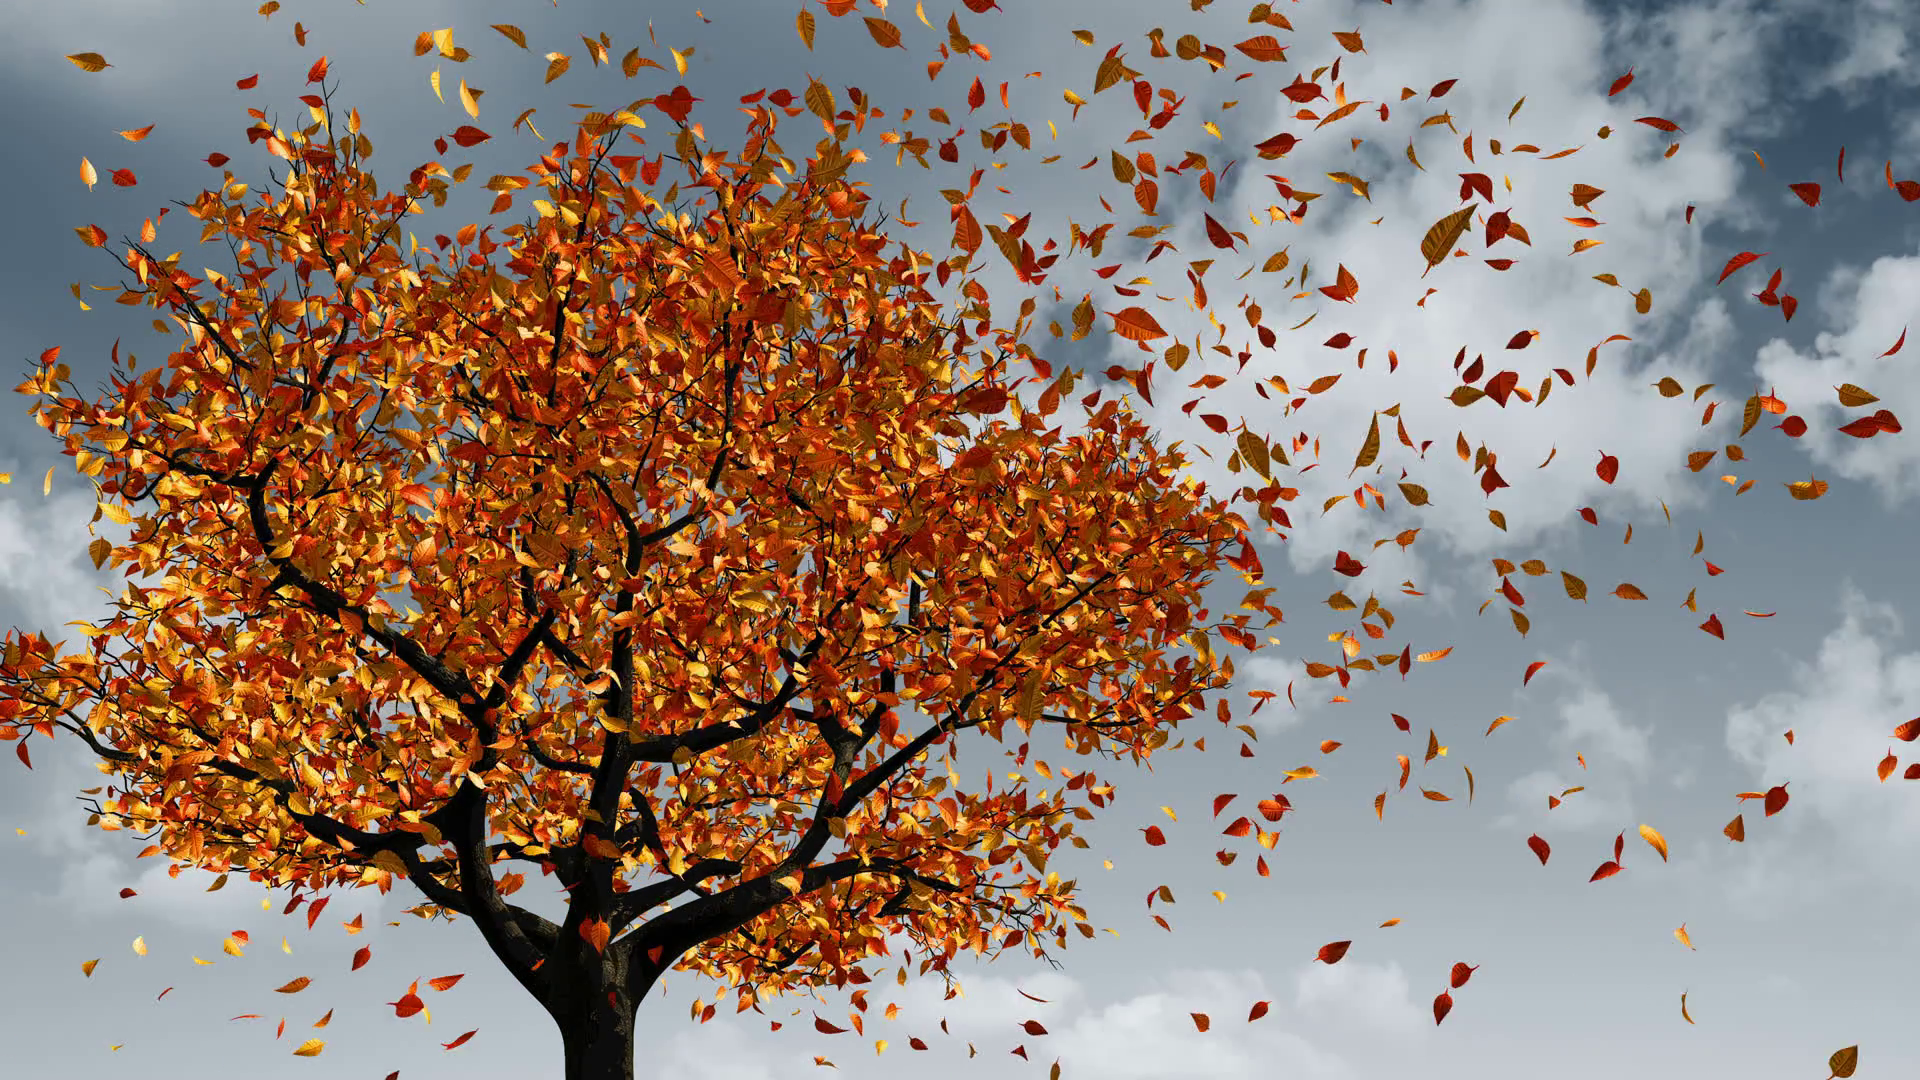 concept-of-changing-of-the-seasons-from-spring-to-autumn-leaves-appear-on-the-tree-they-turn-yellow-and-then-fall-off-3d-animation-4k-3840x2160_b0f3muokye_thumbnail-full13